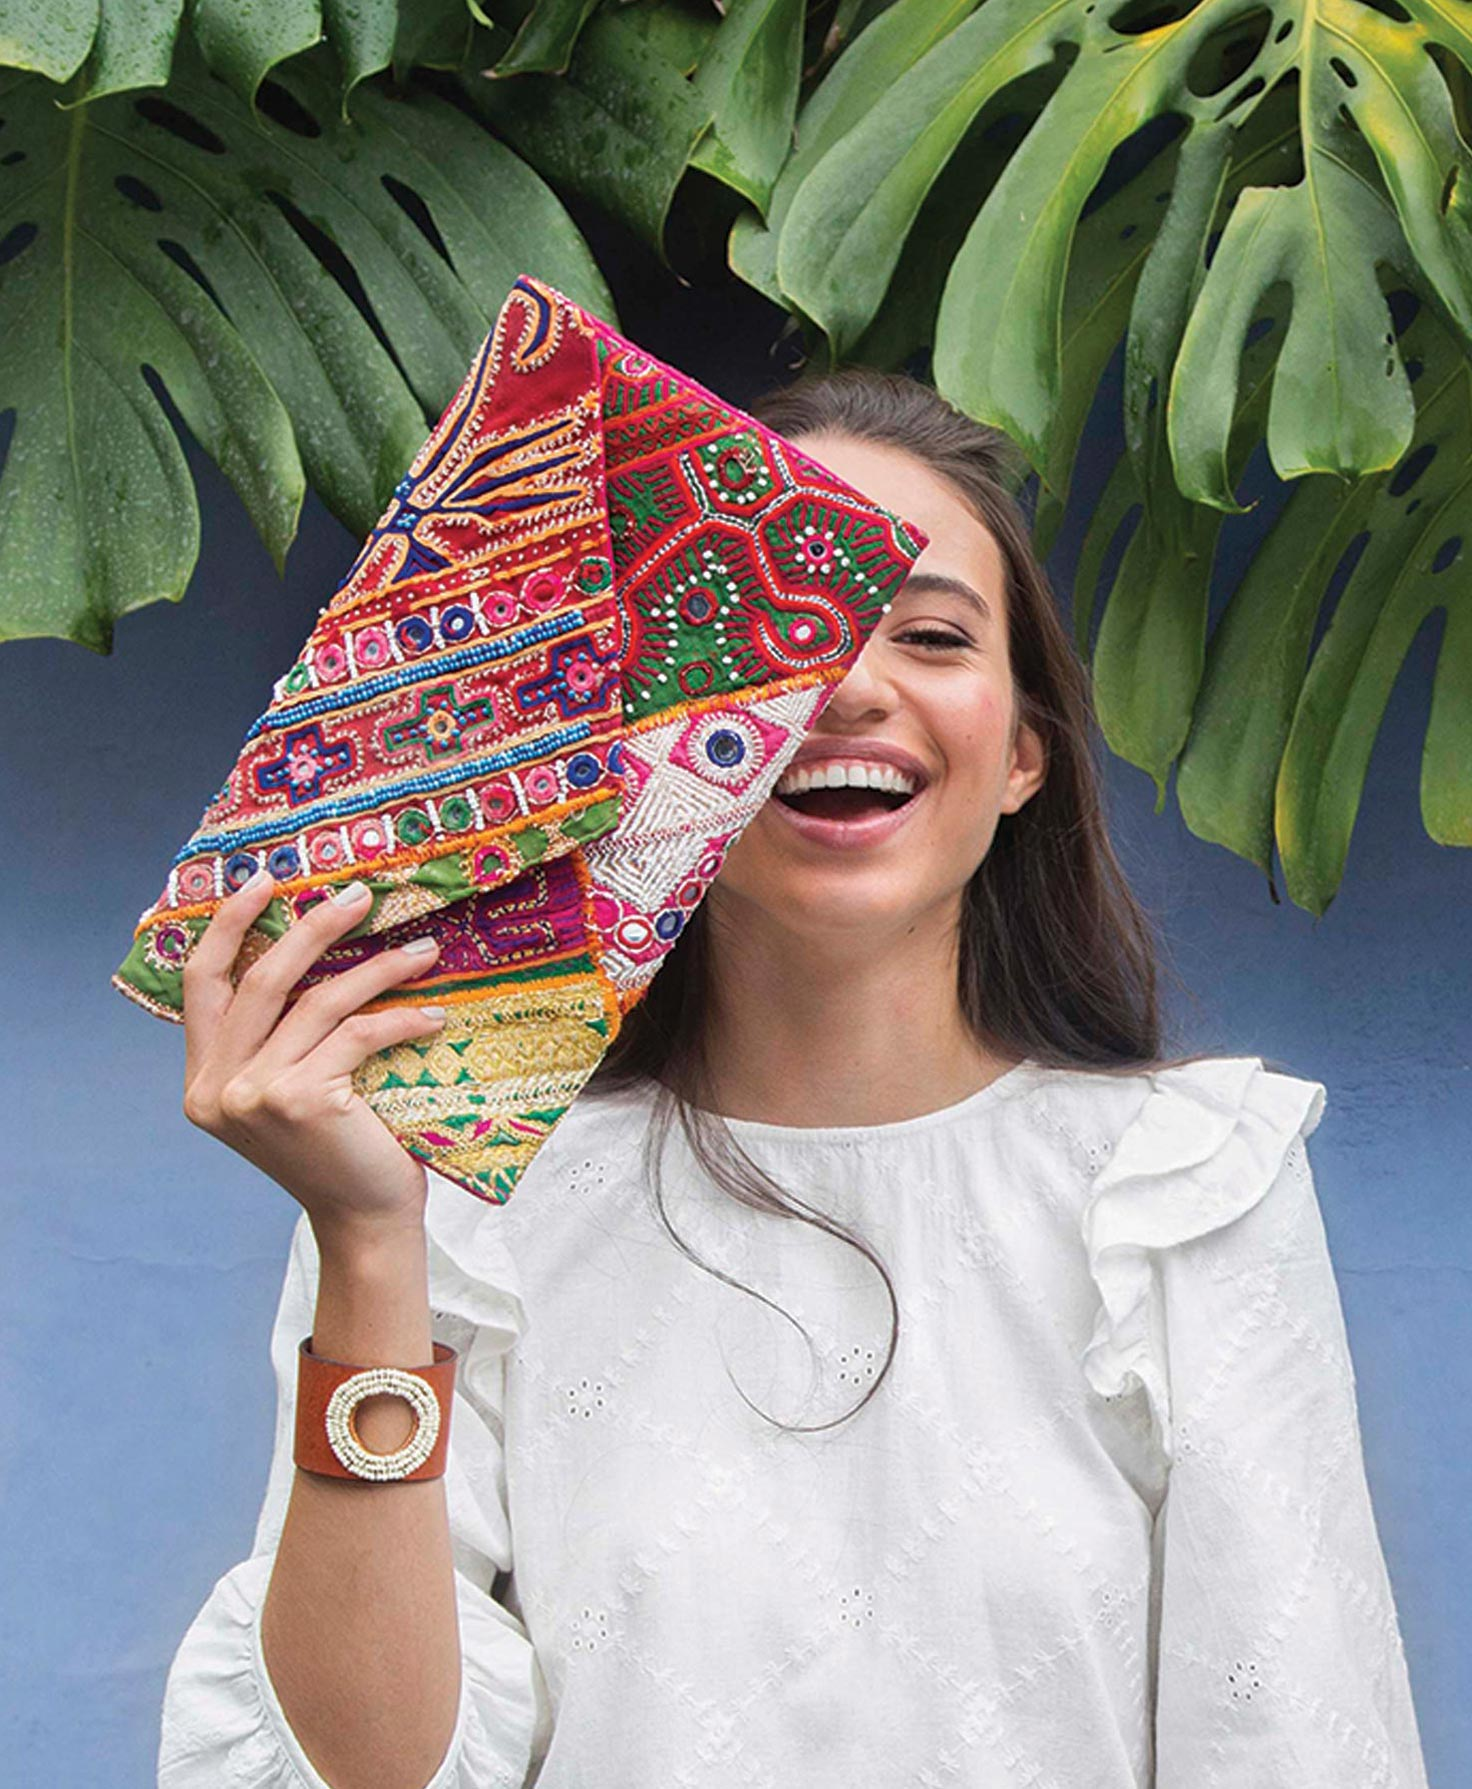 The Paradise Pouch, ethically made in India, is made of upcycled saris. Each is one of a kind. From fair trade fashion brand Noonday Collection.